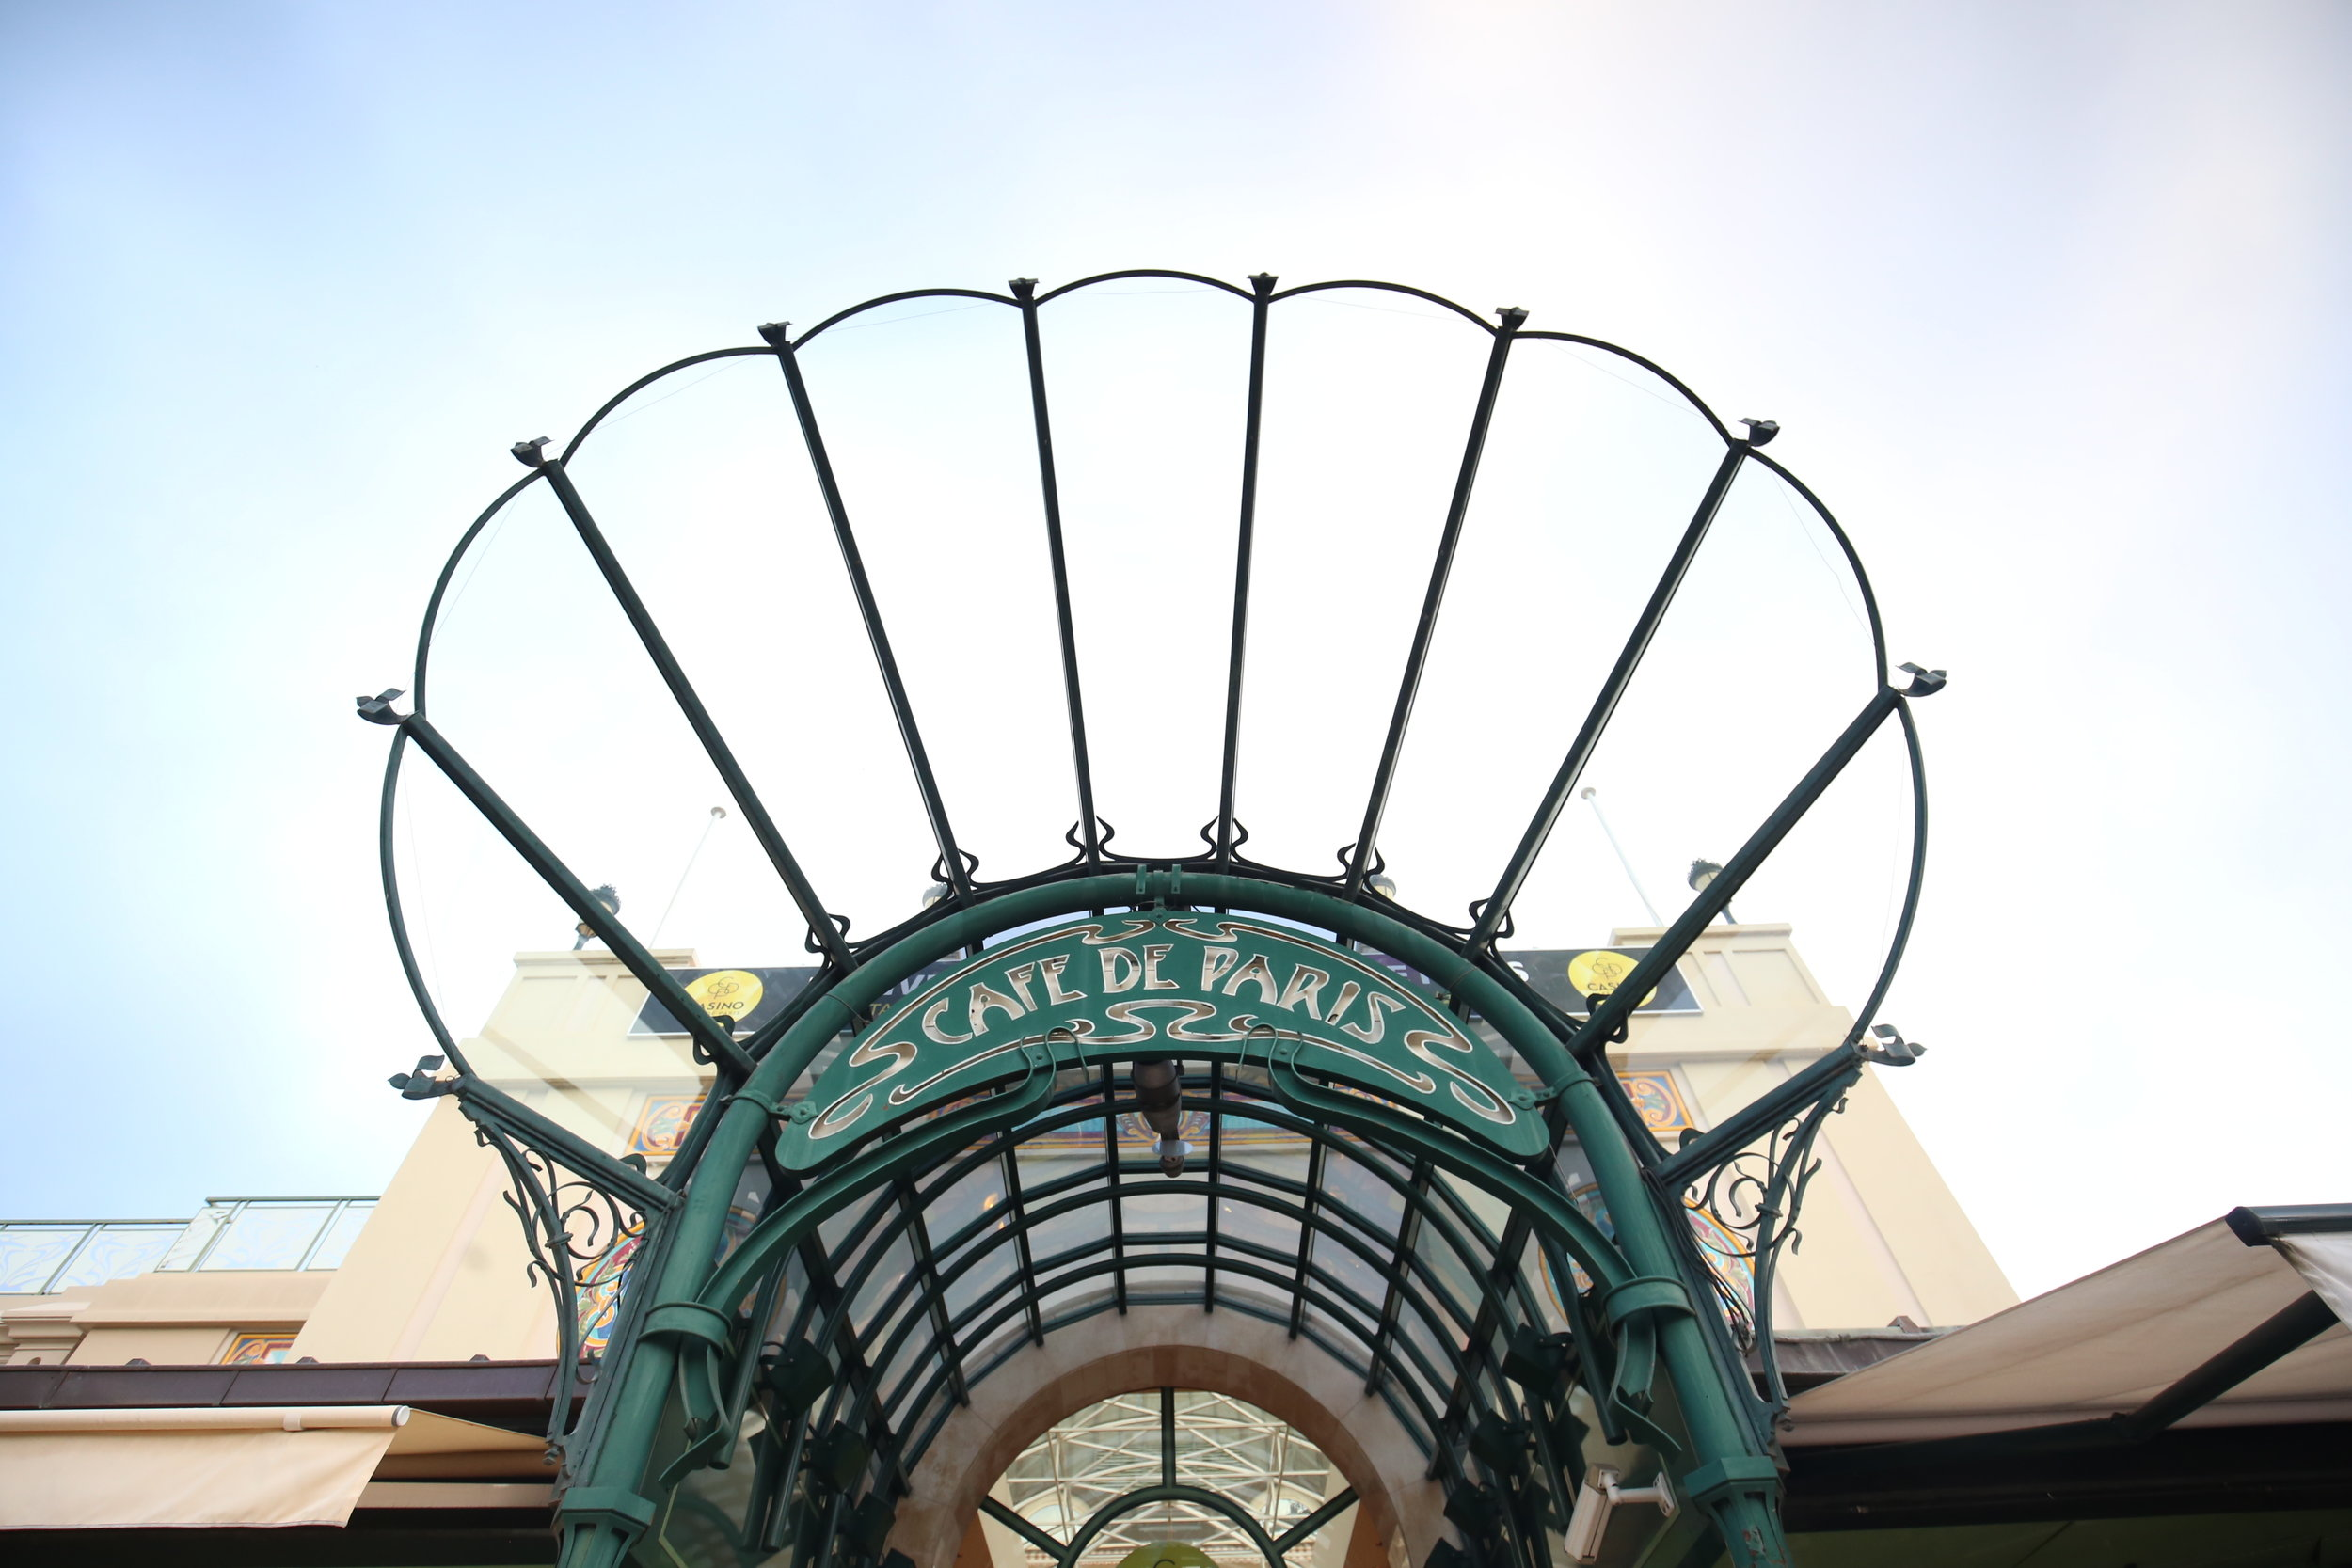 Cafe de Paris art nouveau glass awning in Monaco.